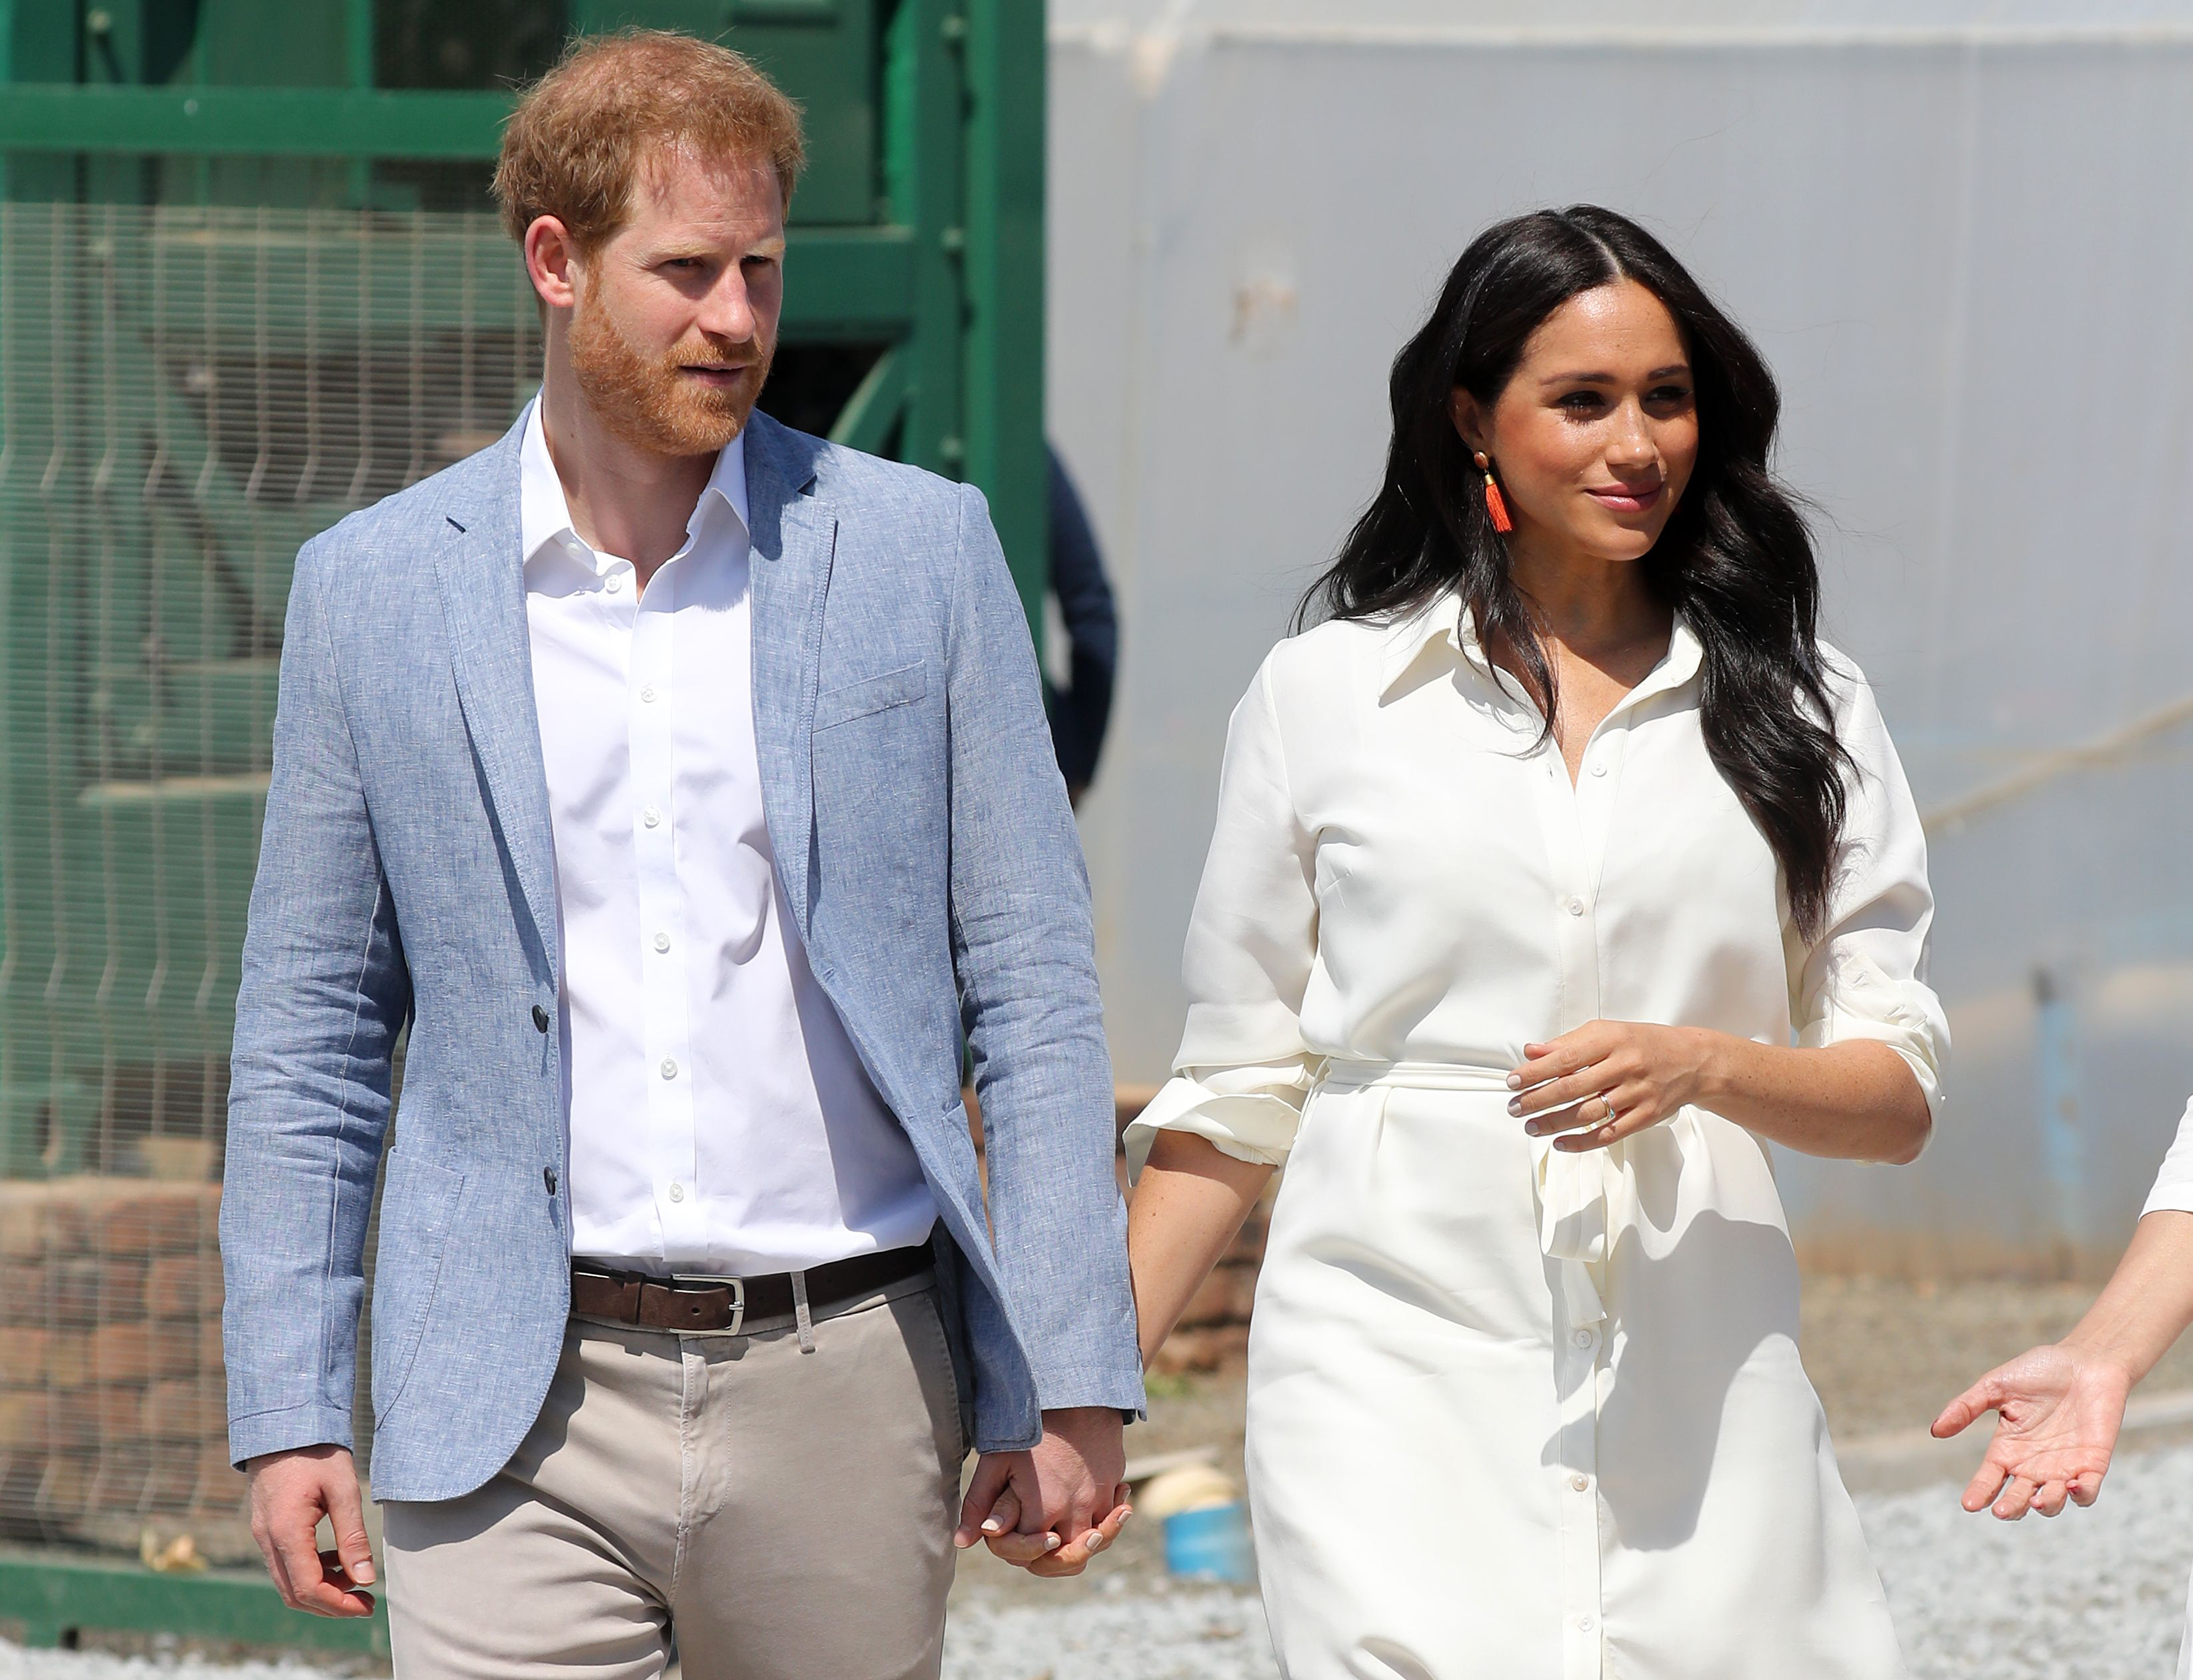 The Duchess of Sussex opens up about missing Prince Harry during their tour split